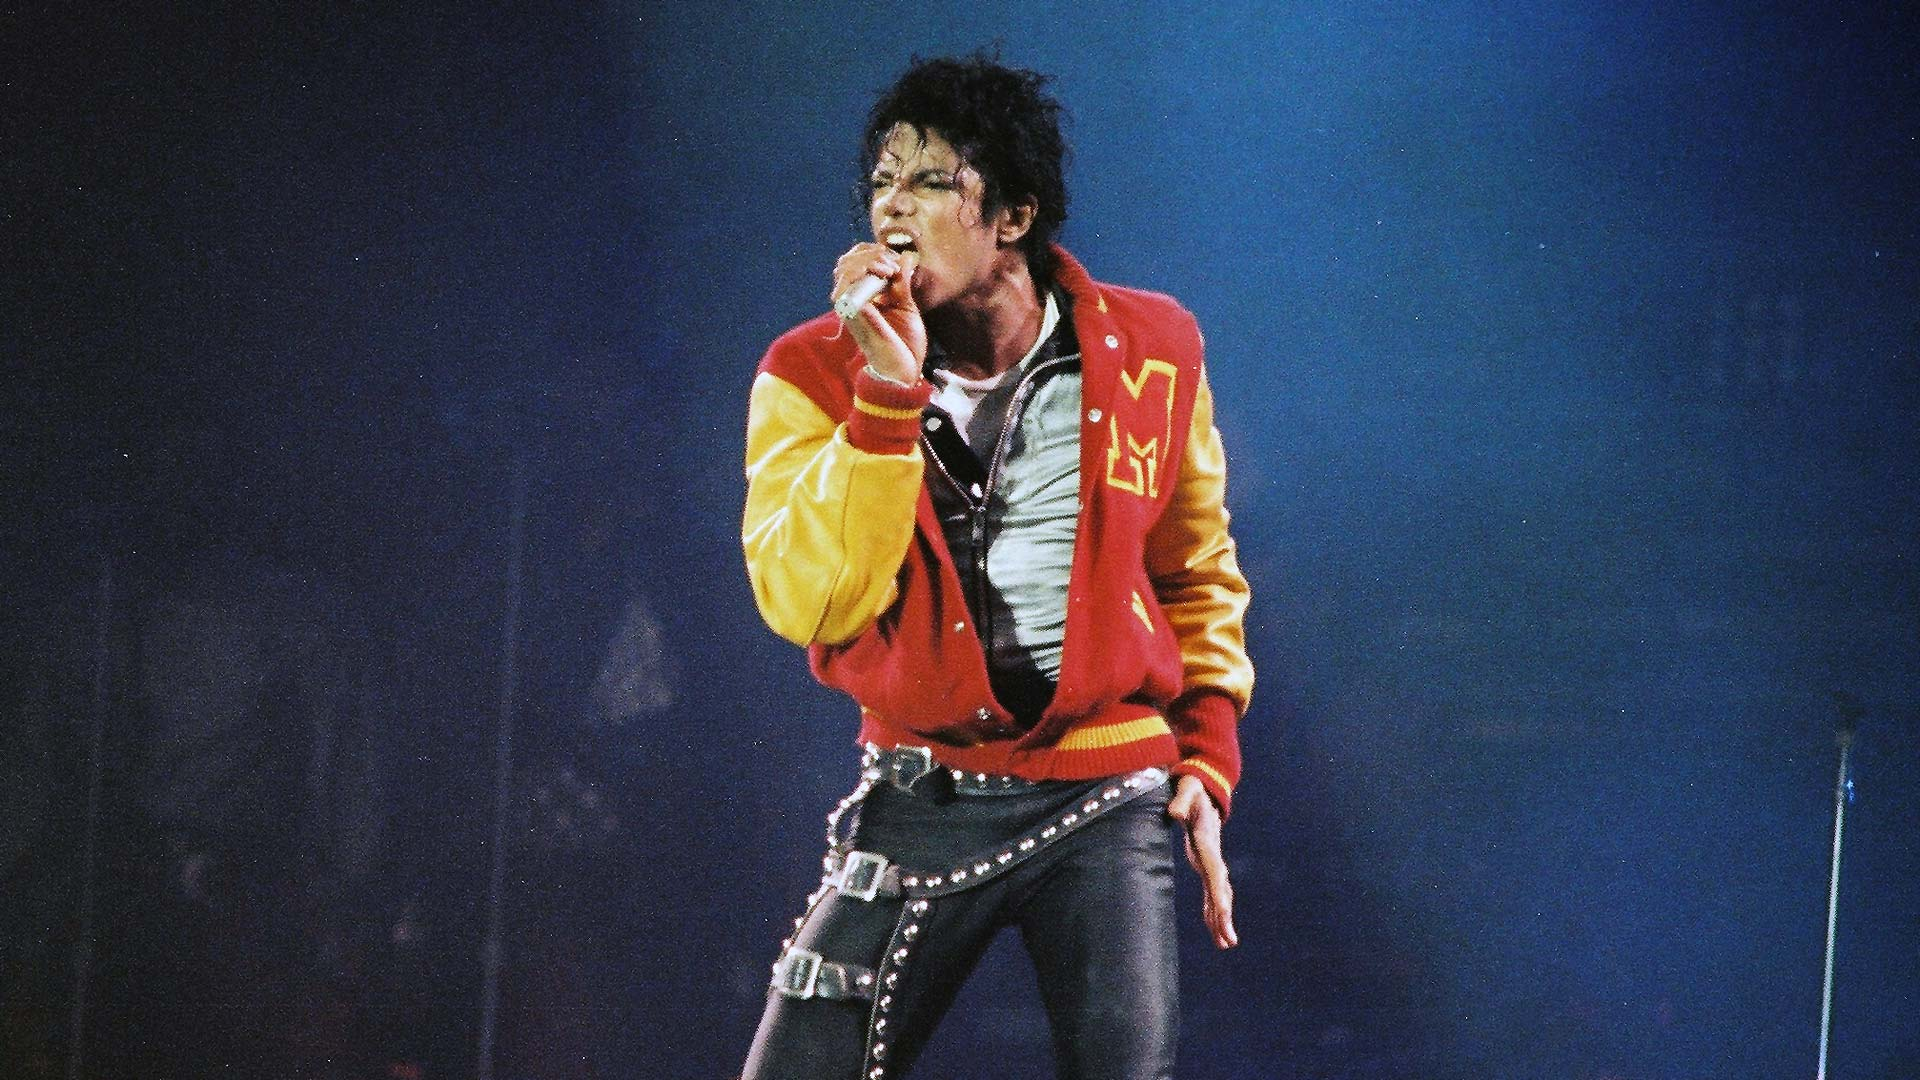 Michael Jackson live in Wembley, im Jahr 1988